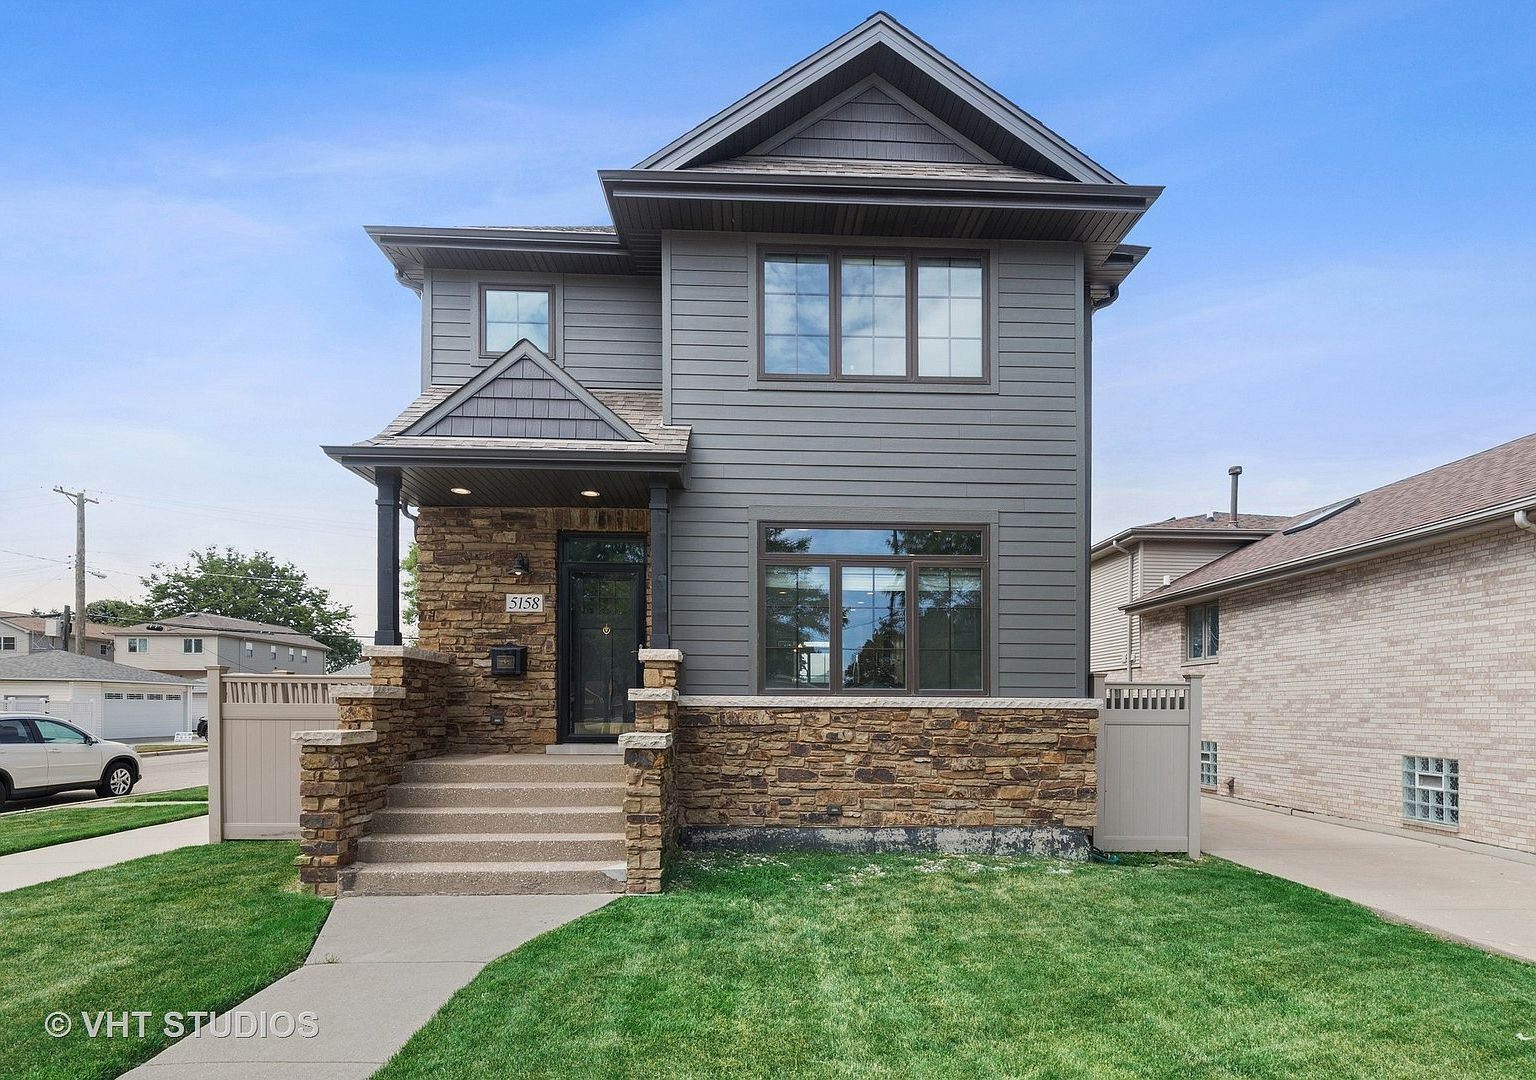 5158 S Normandy Ave Chicago Il 60638 Zillow